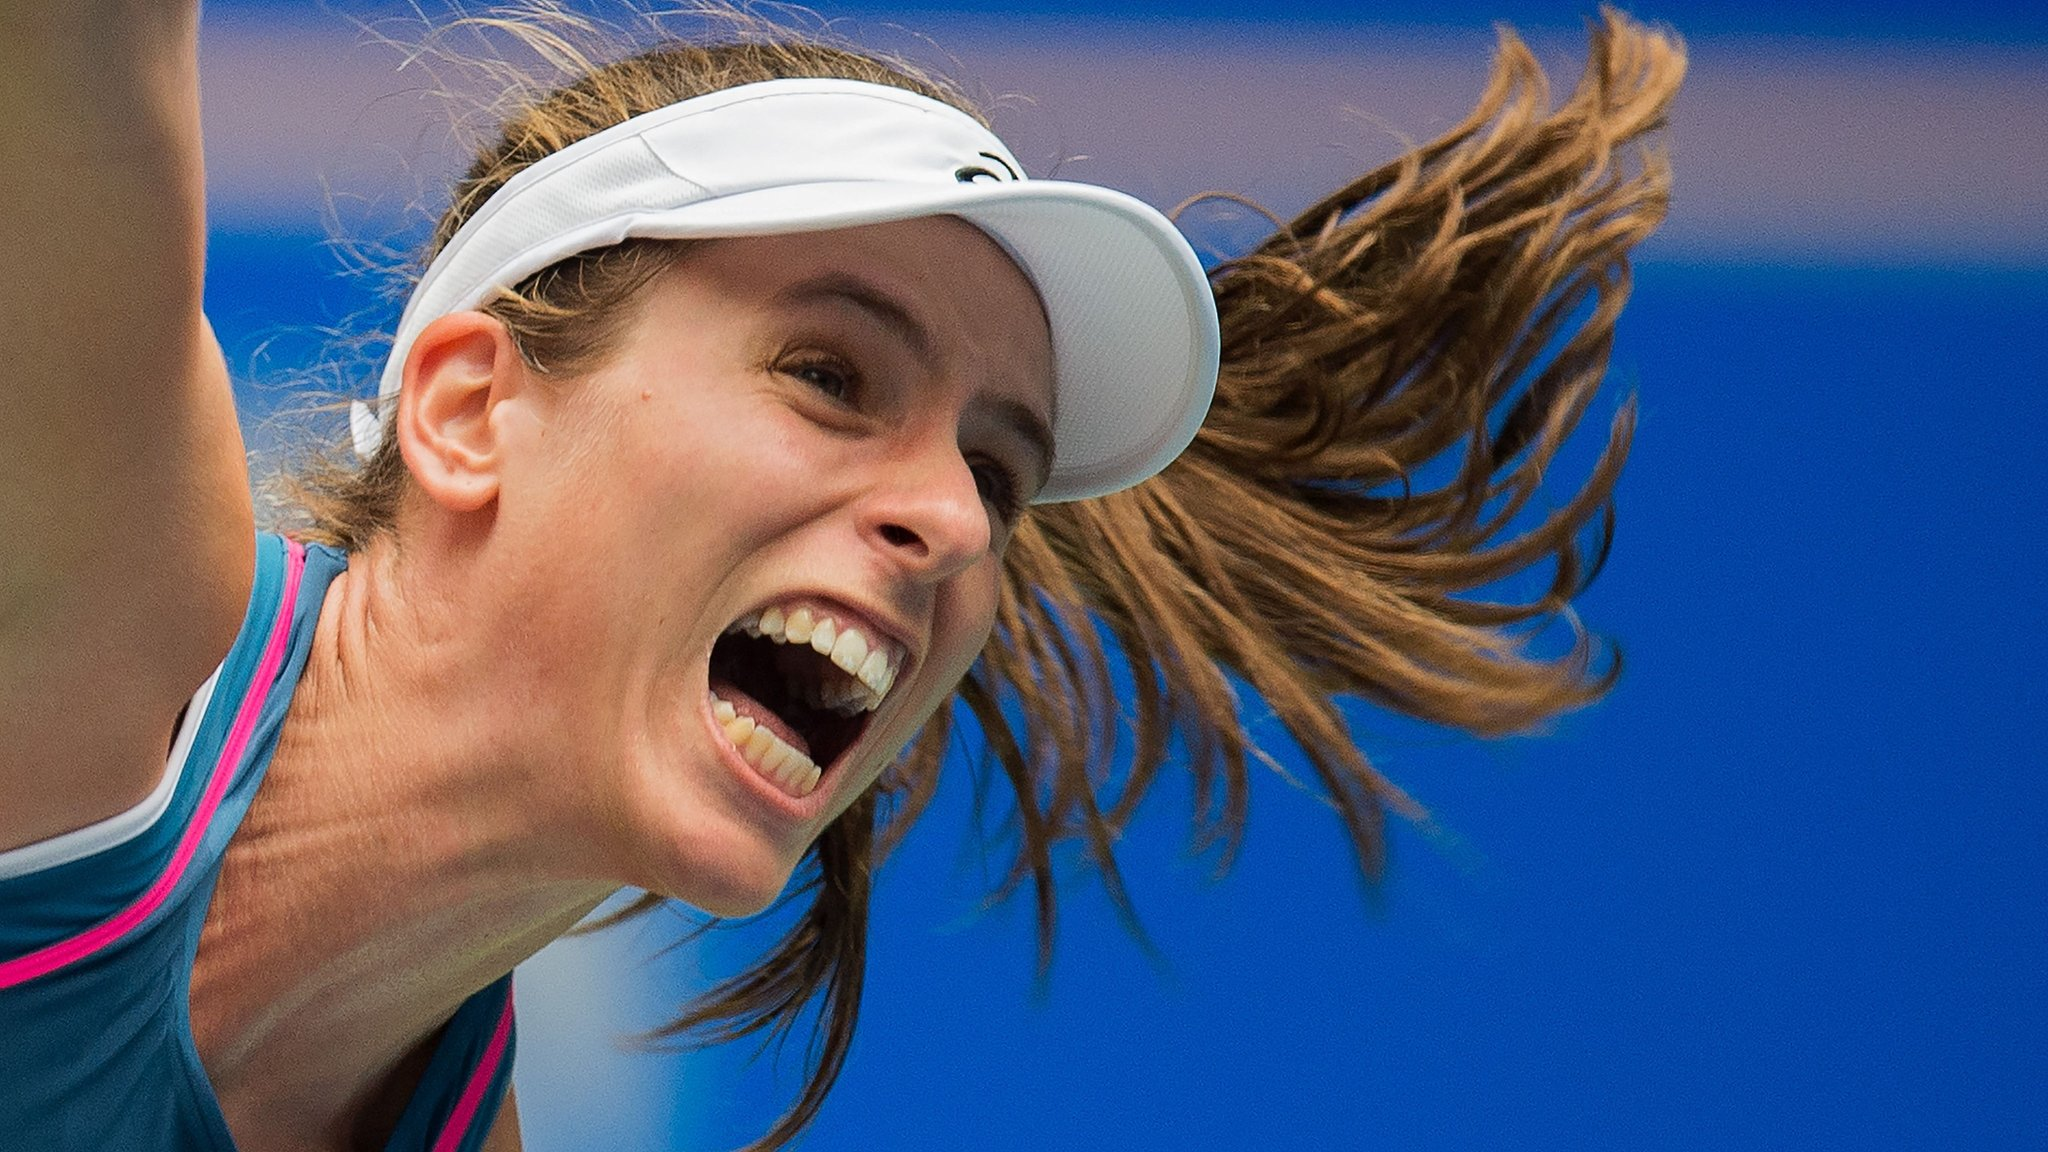 Johanna Konta loses in Wuhan Open first round to Ashleigh Barty